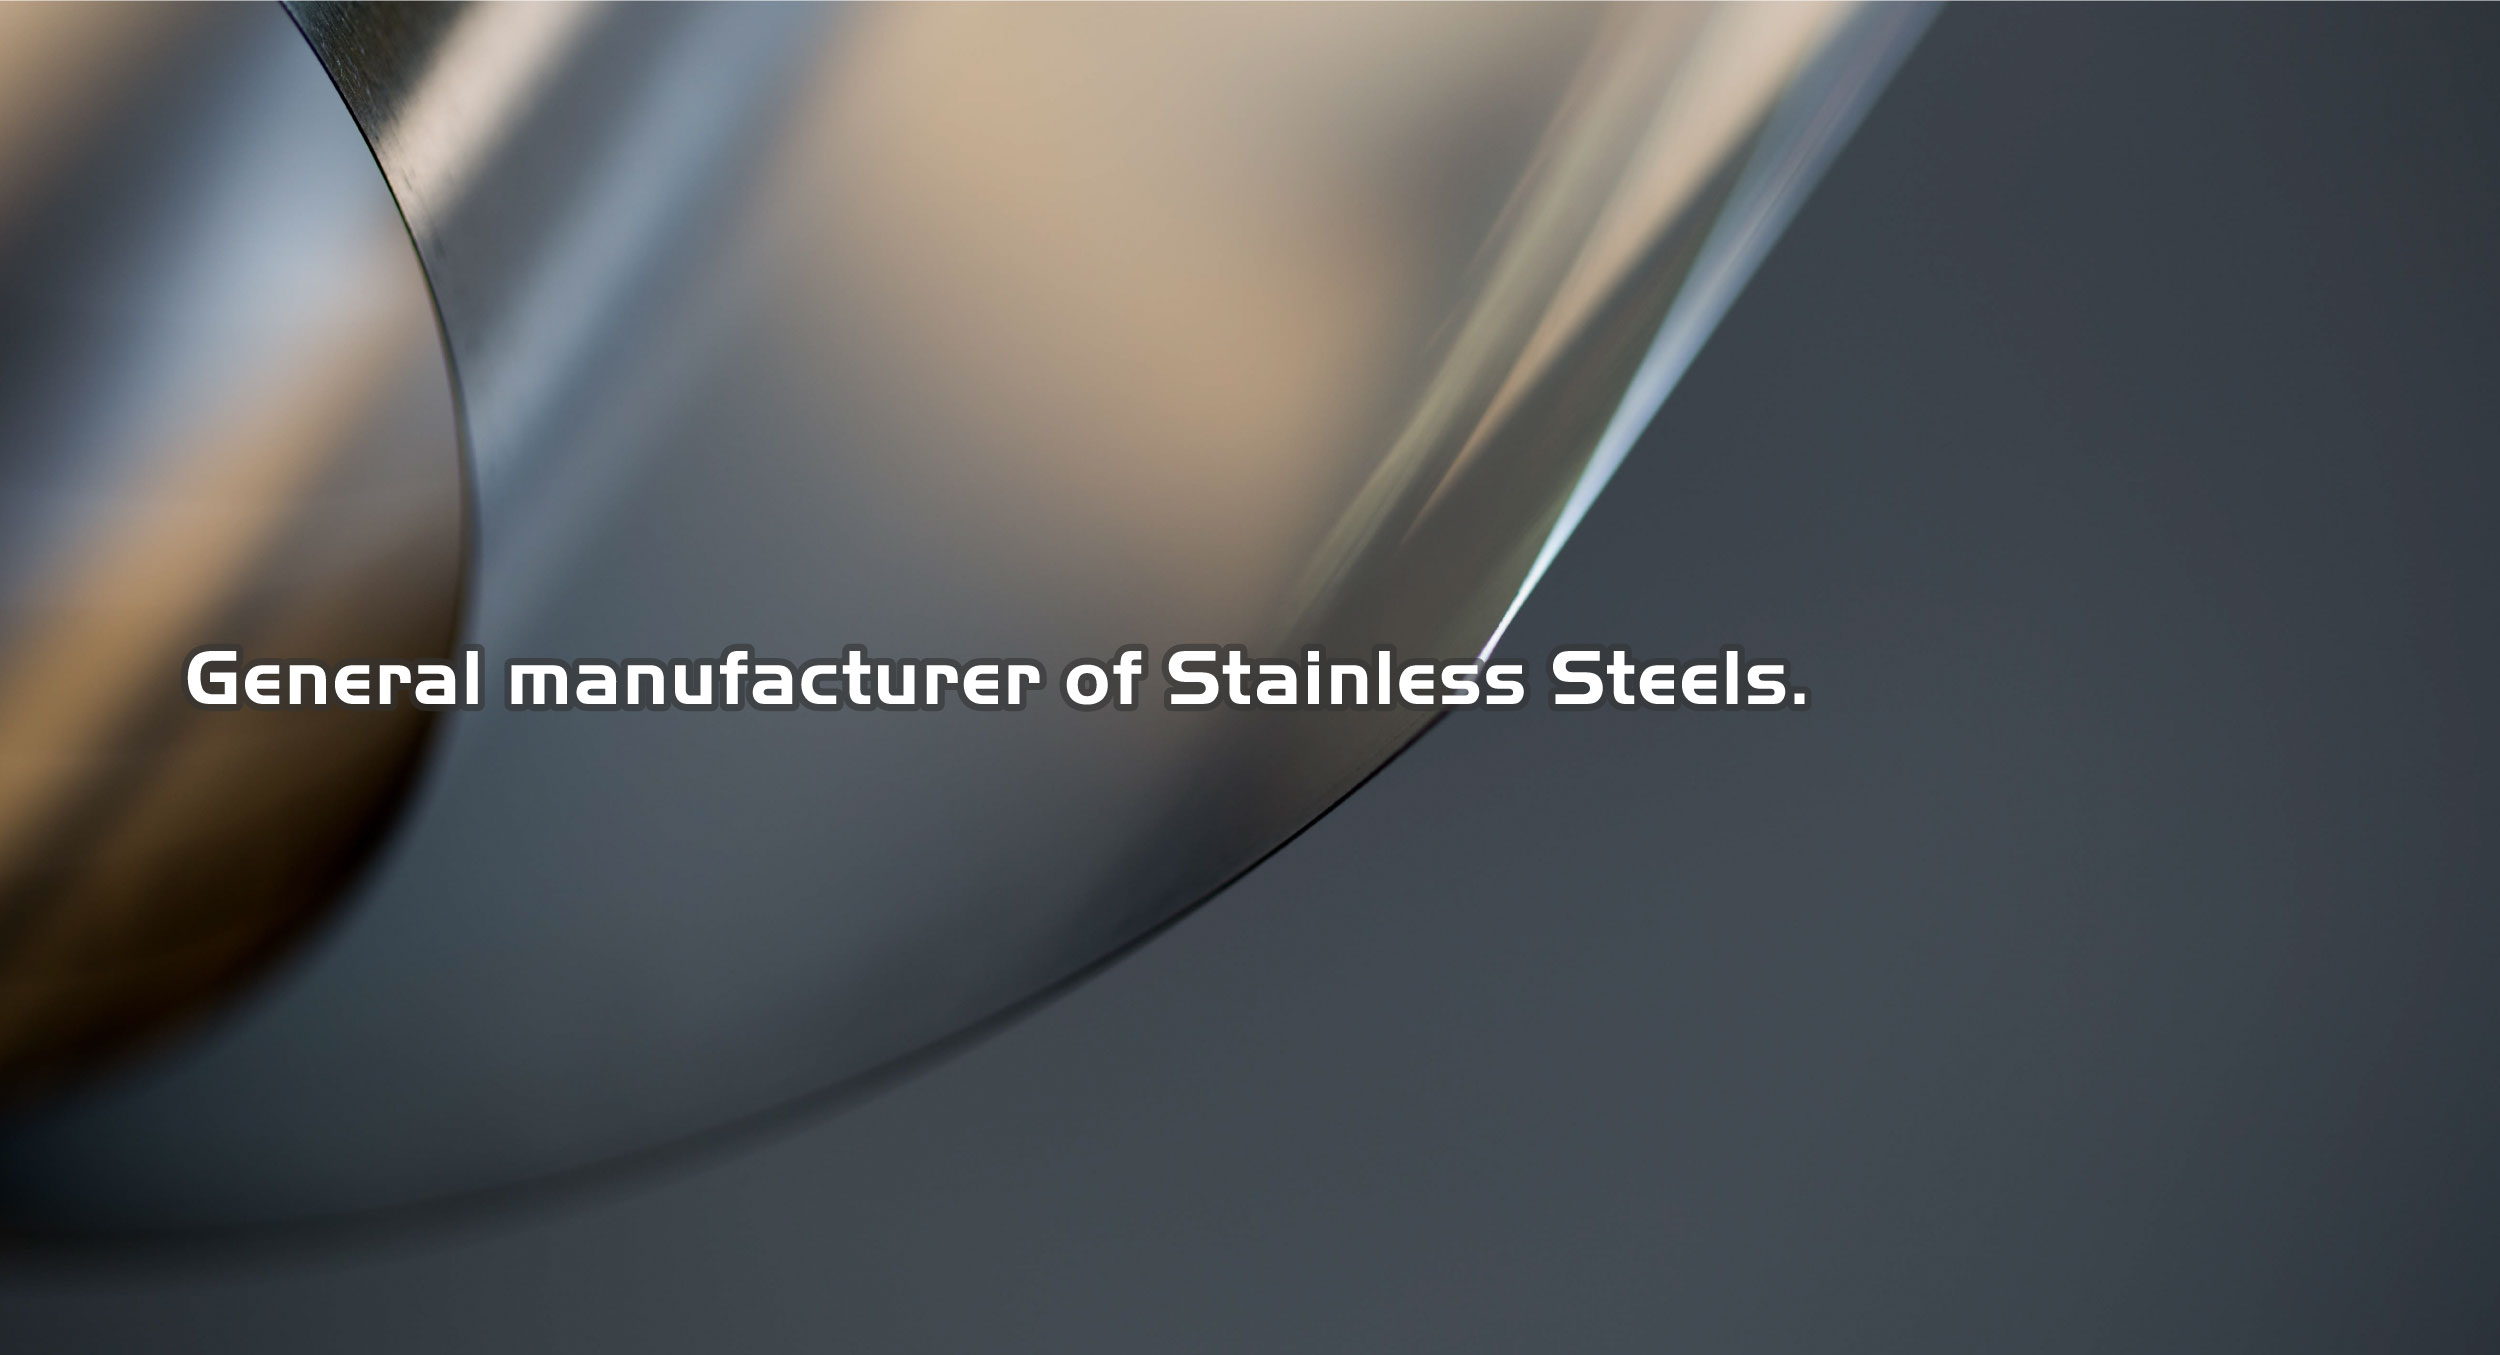 April 1, 2019 NIPPON STEEL Stainless Steel Corporation established